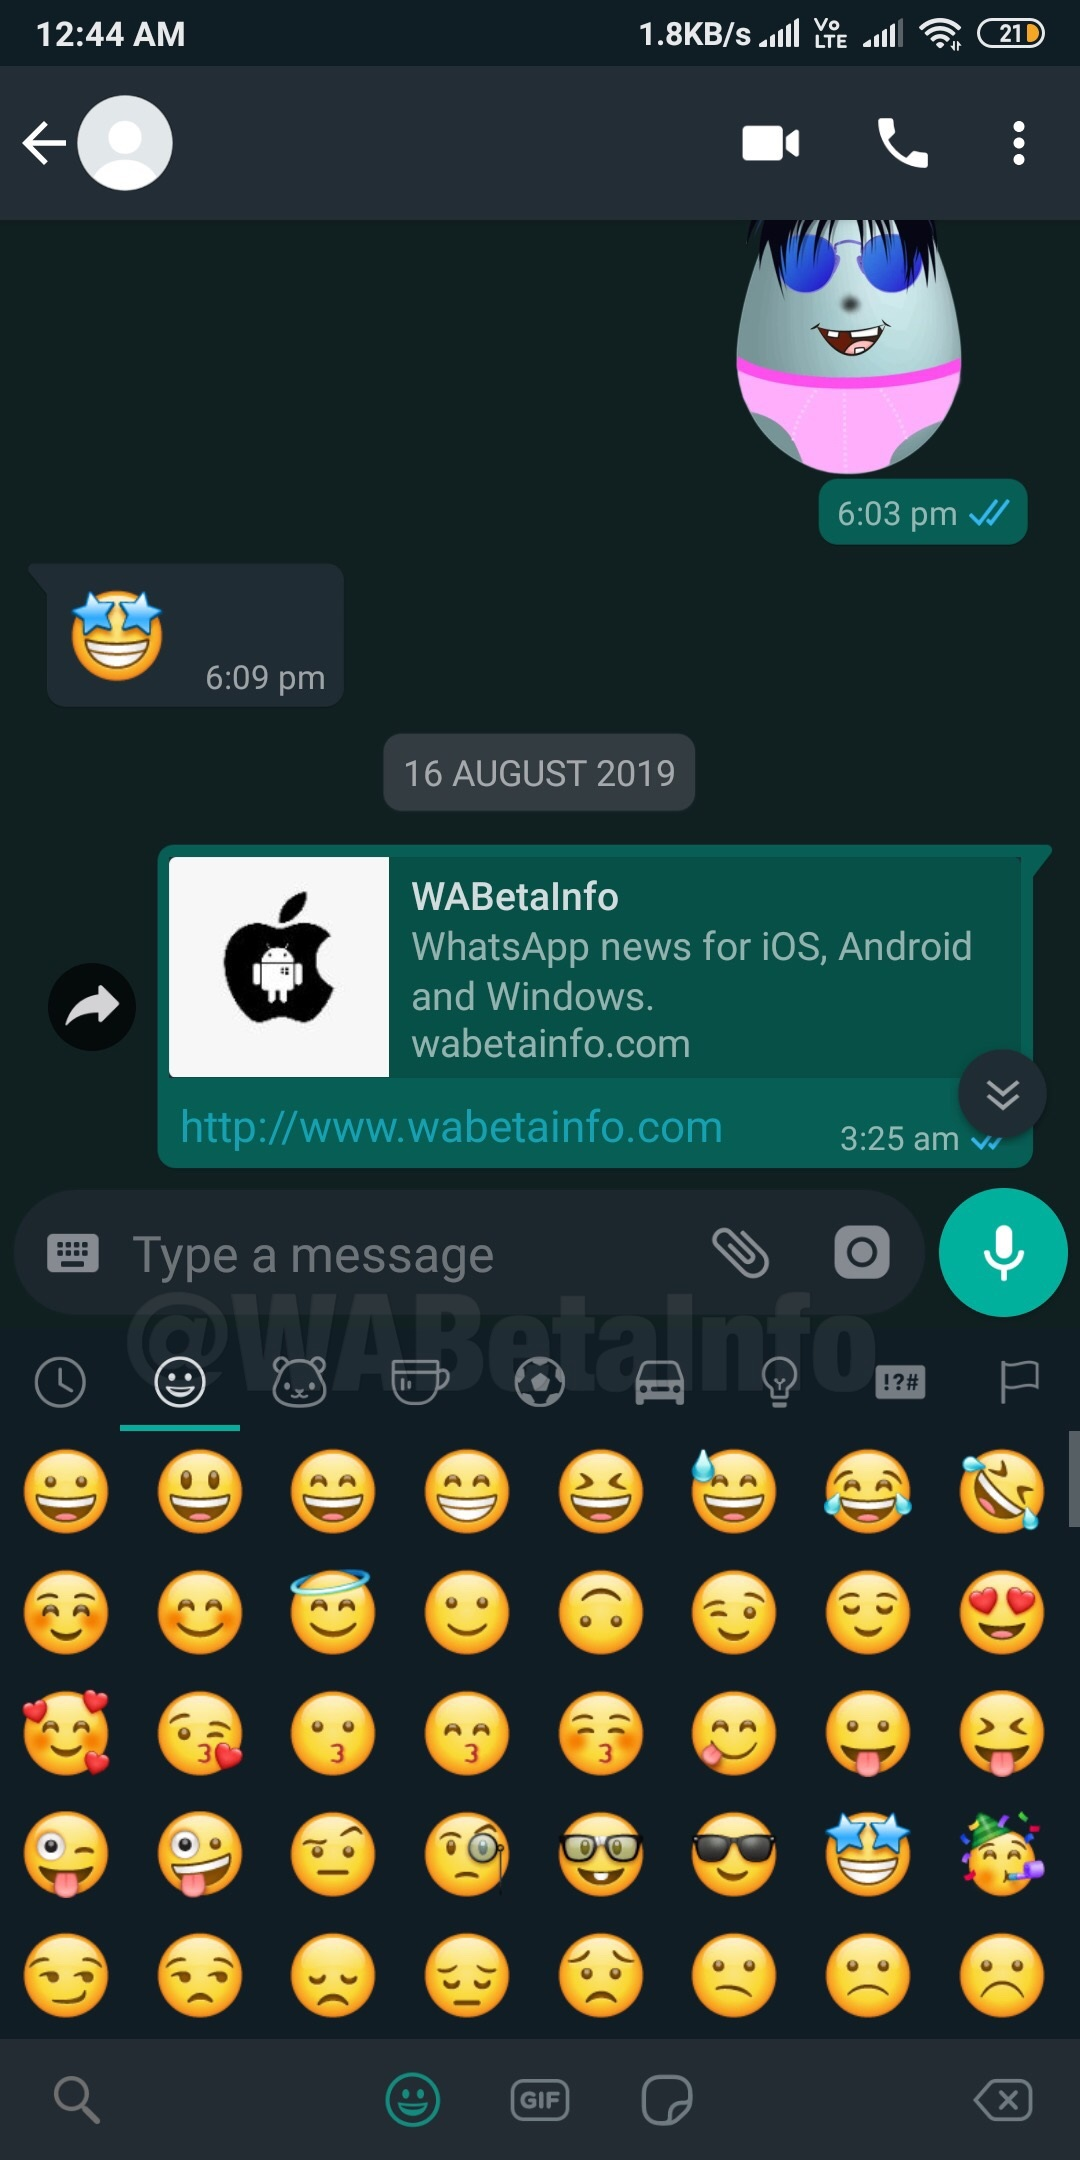 Finally! WhatsApp Android Users to Get Their Much-Anticipated Night Mode